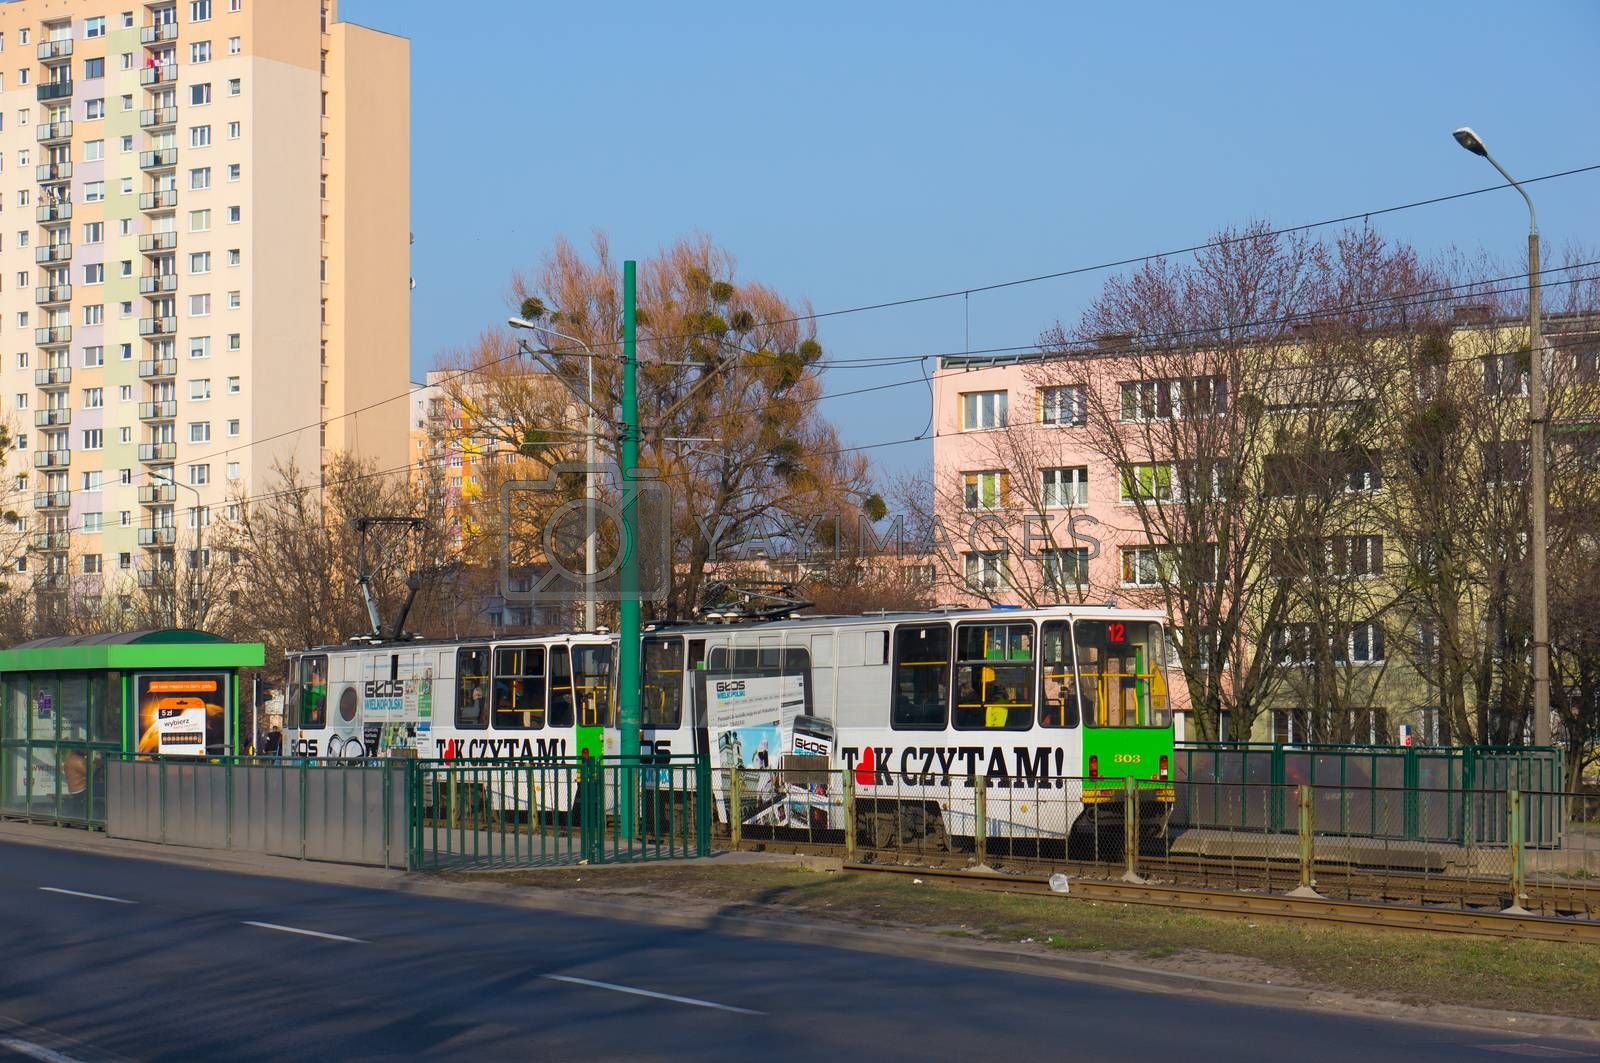 POZNAN, POLAND - MARCH 09, 2014: Departing tram at the Zamenhofa street